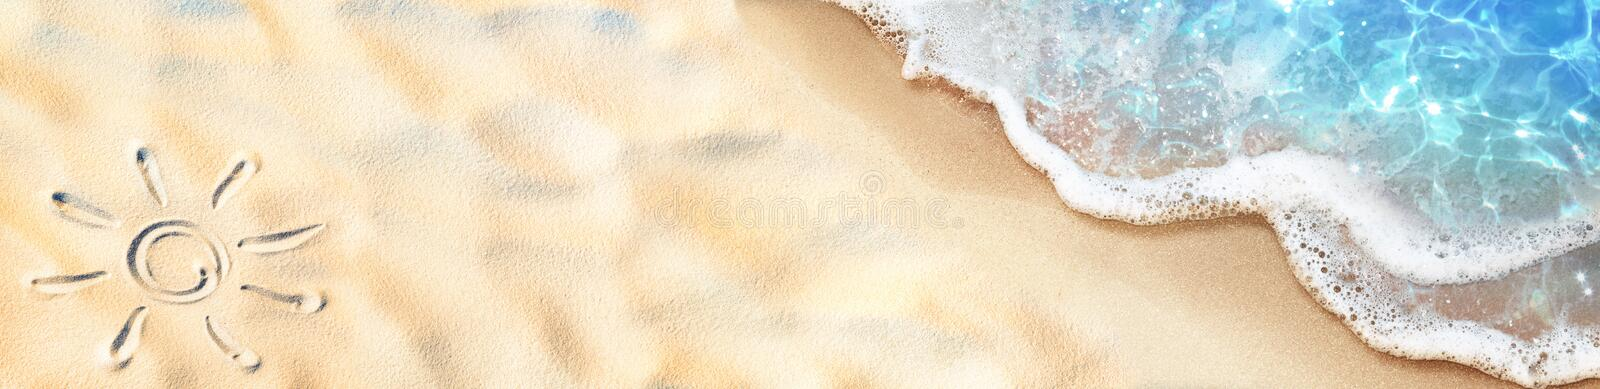 Seashore - Sun Drawn On The Sand And Waves stock photo